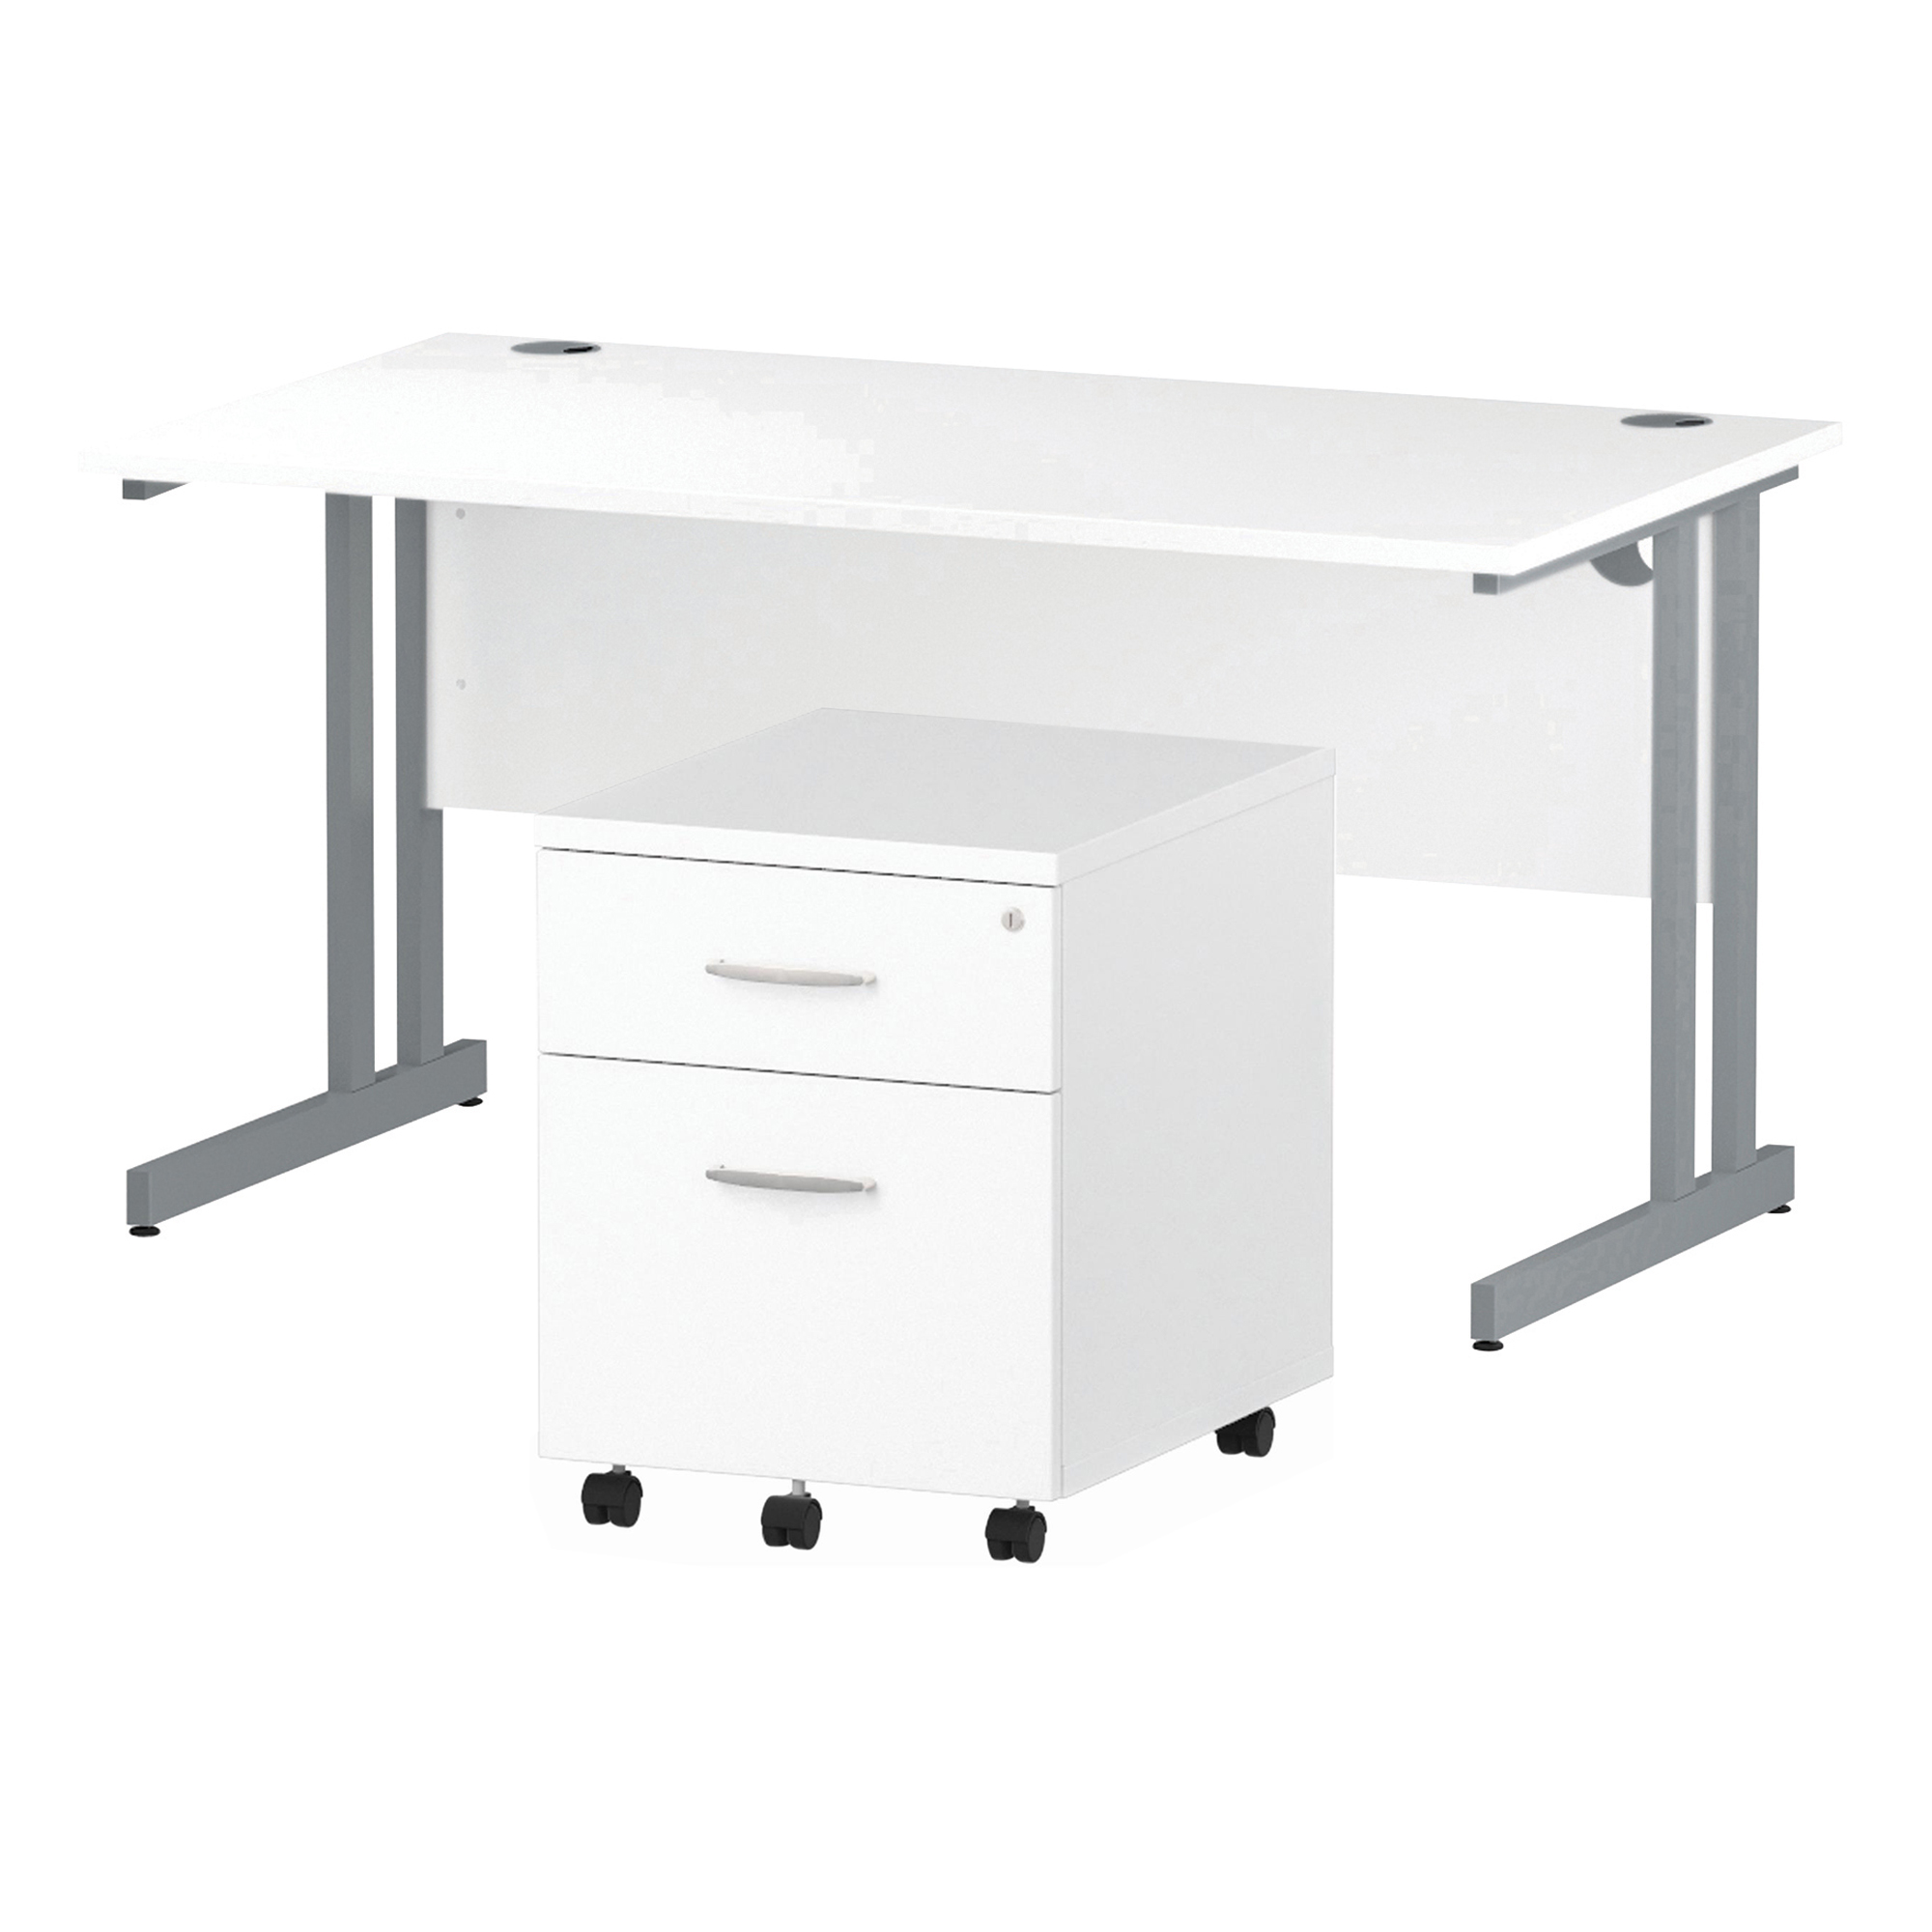 Desks Trexus Cantilever Desk 1400x800 & 2 Drawer Pedestal White Bundle Offer Feb-Apr 2020